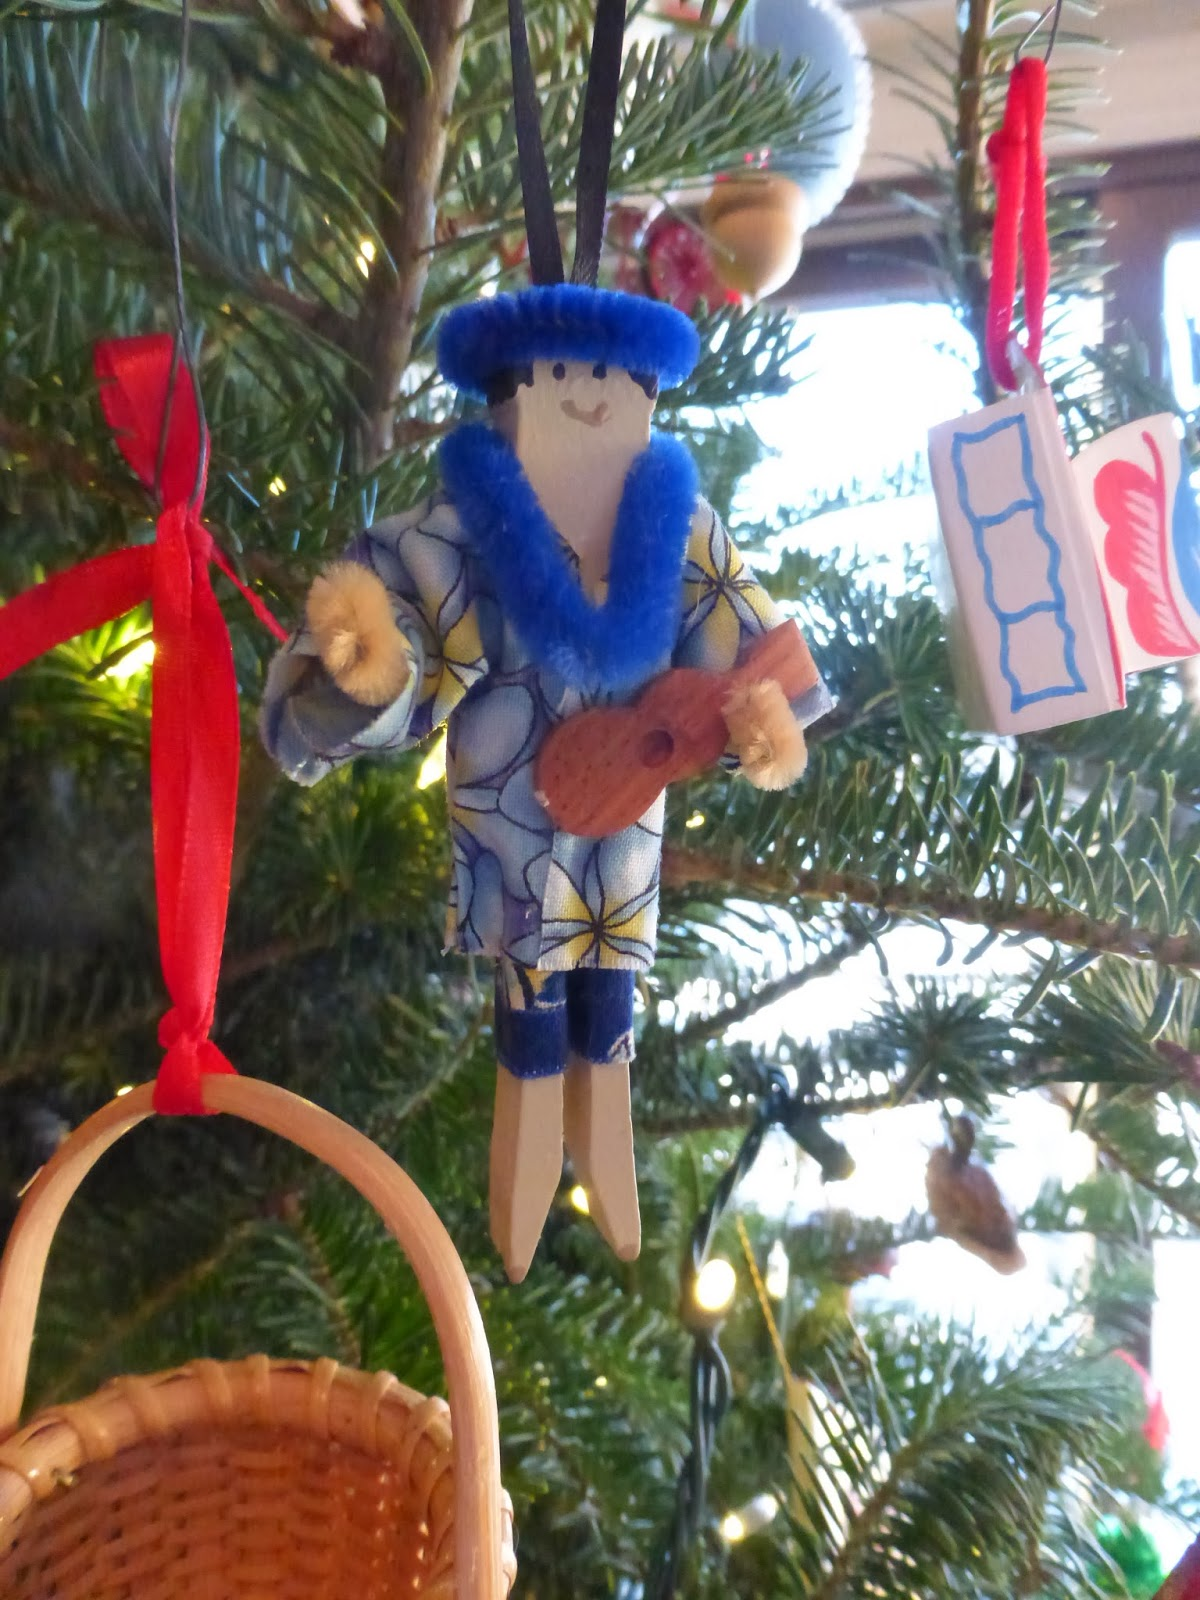 Cousin ornaments - A Homemade Hawaiian Ukulele Boy Made From A Clothes Pin From A Cousin In Hawaii Mele Kalikimaka